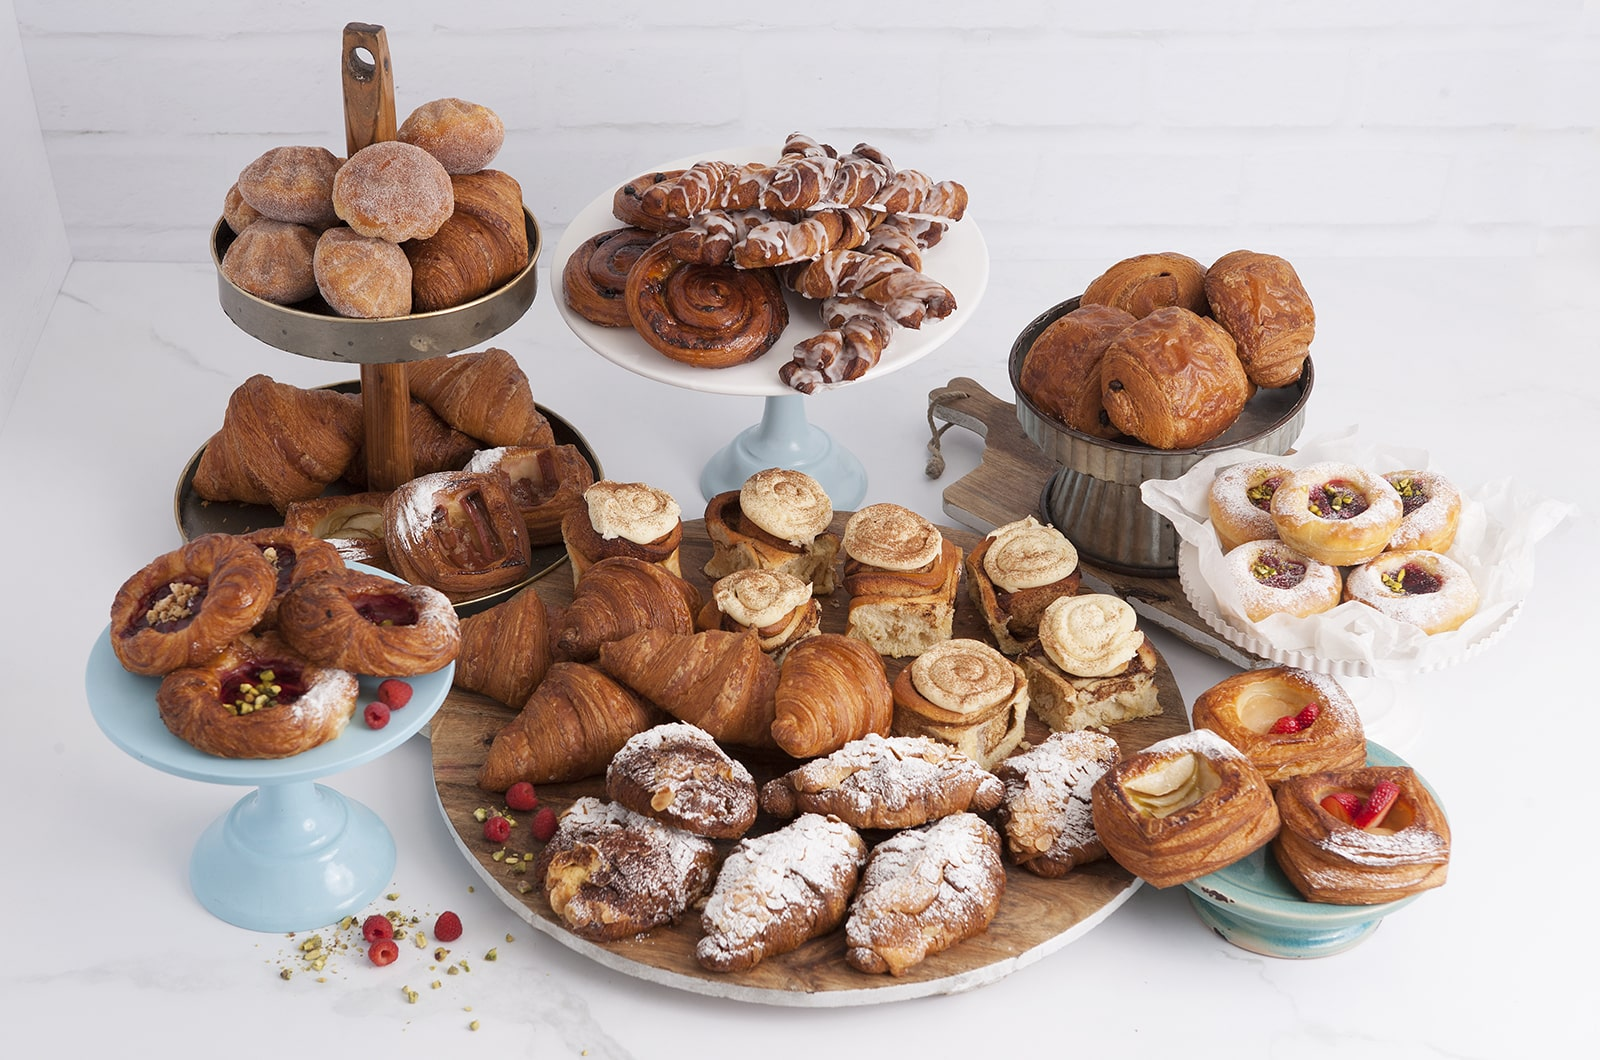 Made with traditional French recipes, our pastries including croissants, cinnabuns, pain au chocolate, danishes and brioche.